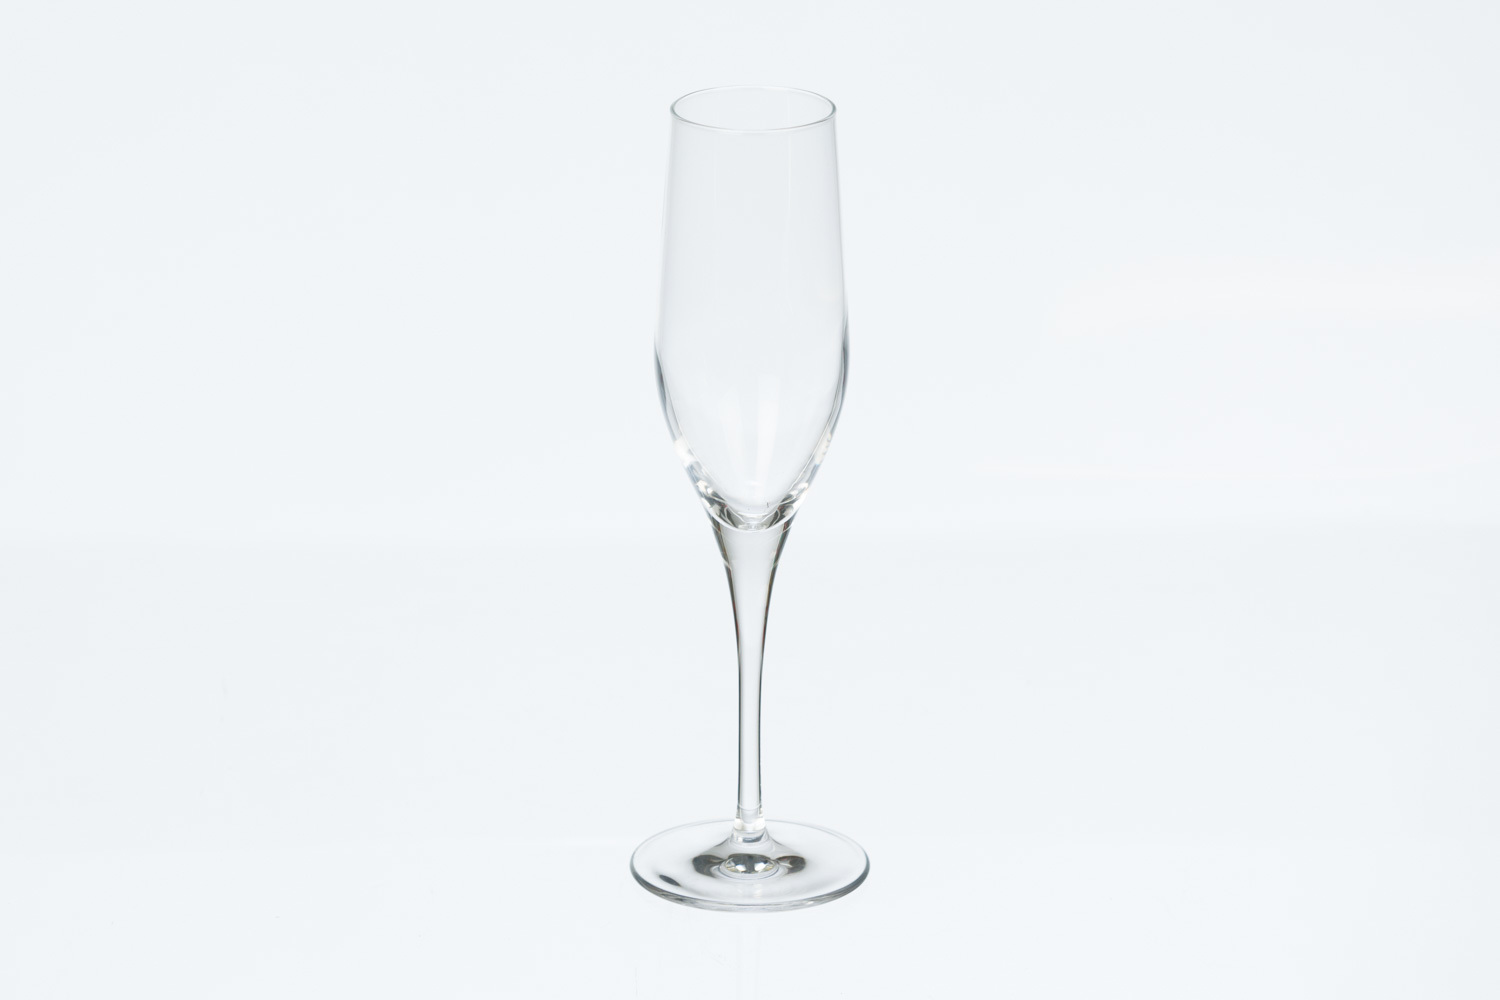 Exquisit Crystal Champagne Flute